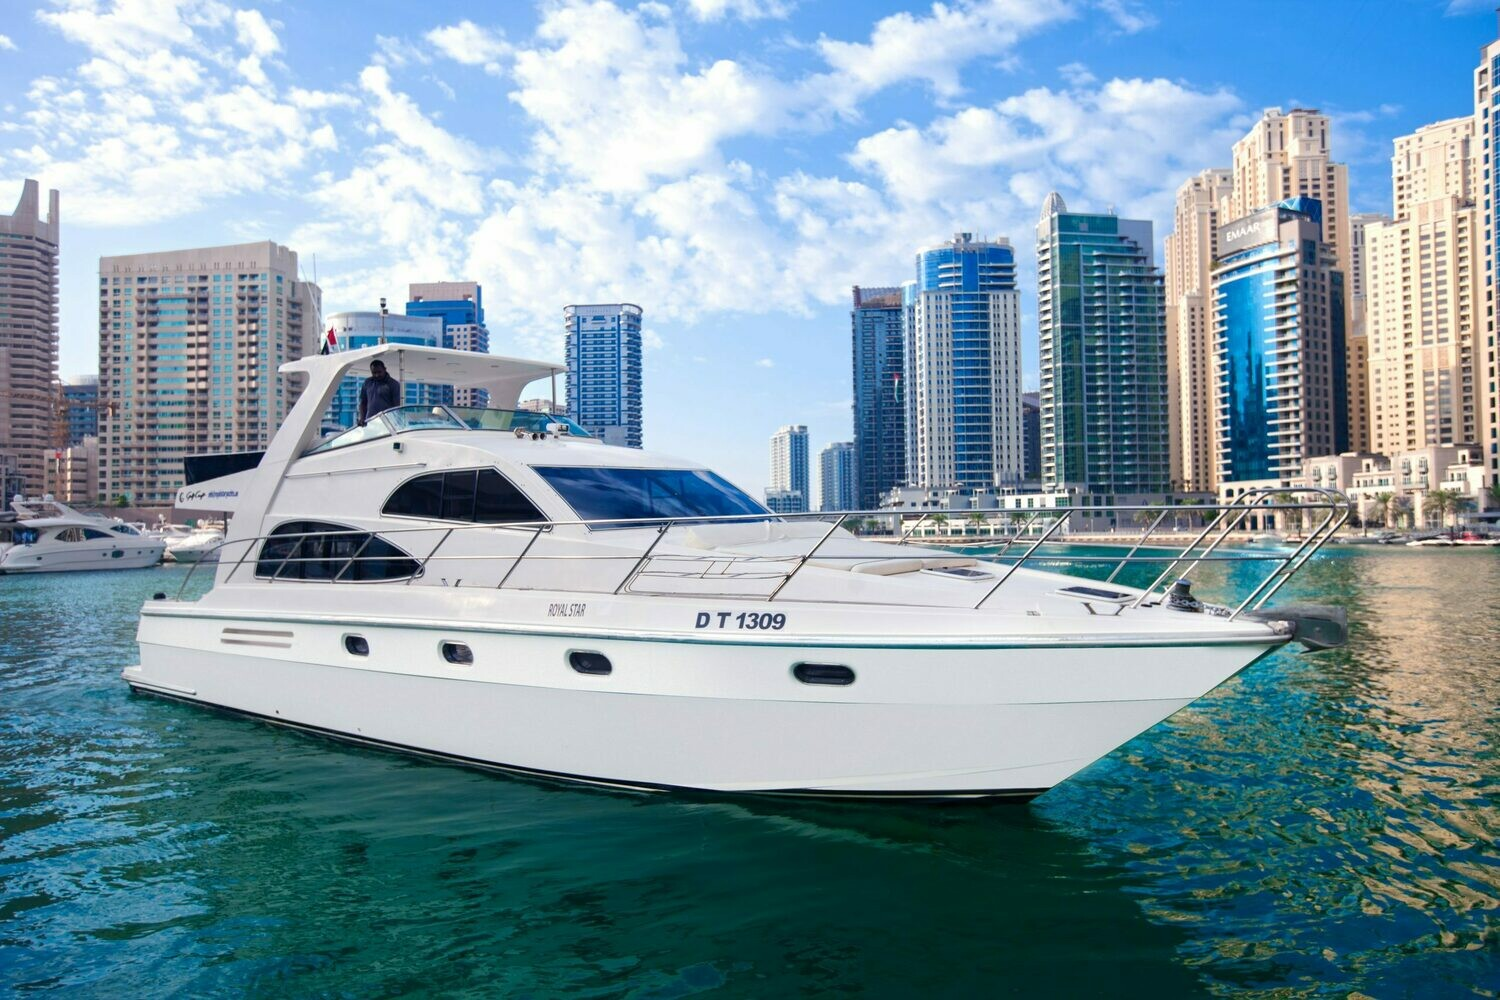 GULF CRAFT 55 FT 1000 AED